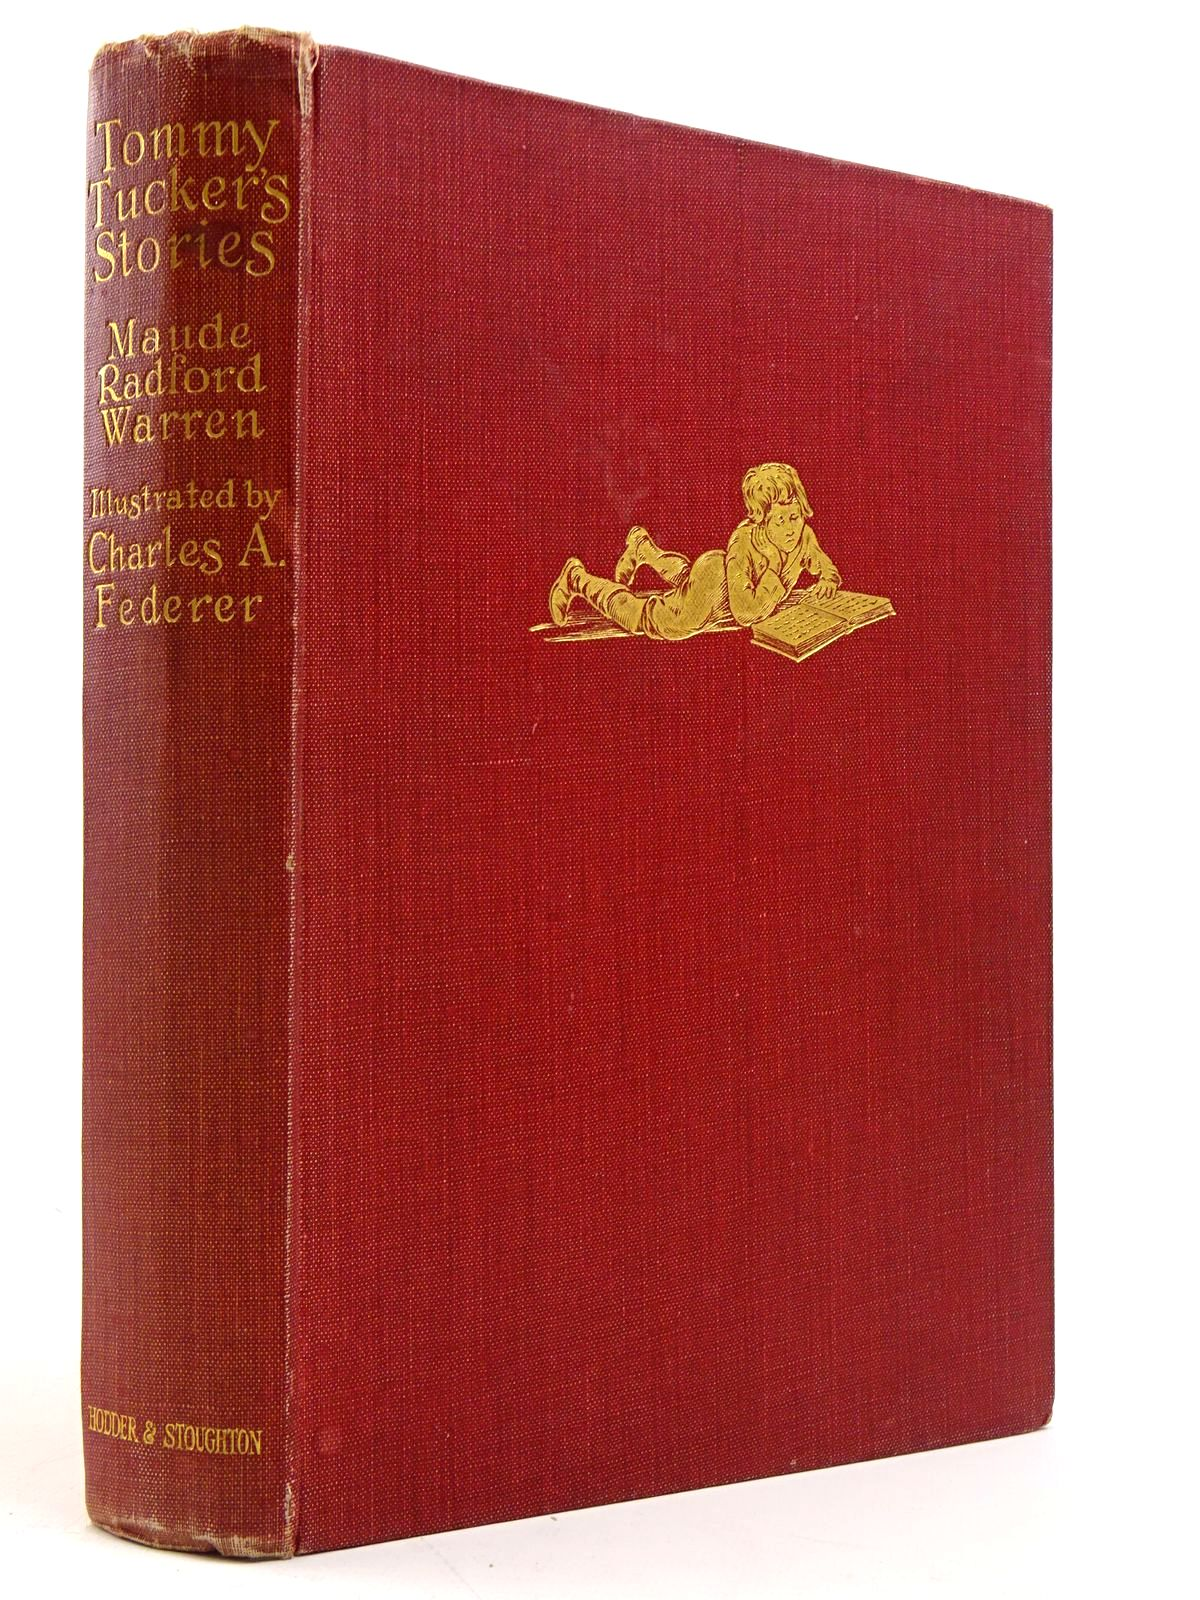 Photo of TOMMY TUCKER'S STORIES written by Warren, Maude Radford Davenport, Eve illustrated by Federer, Charles A. published by Hodder & Stoughton (STOCK CODE: 1817439)  for sale by Stella & Rose's Books